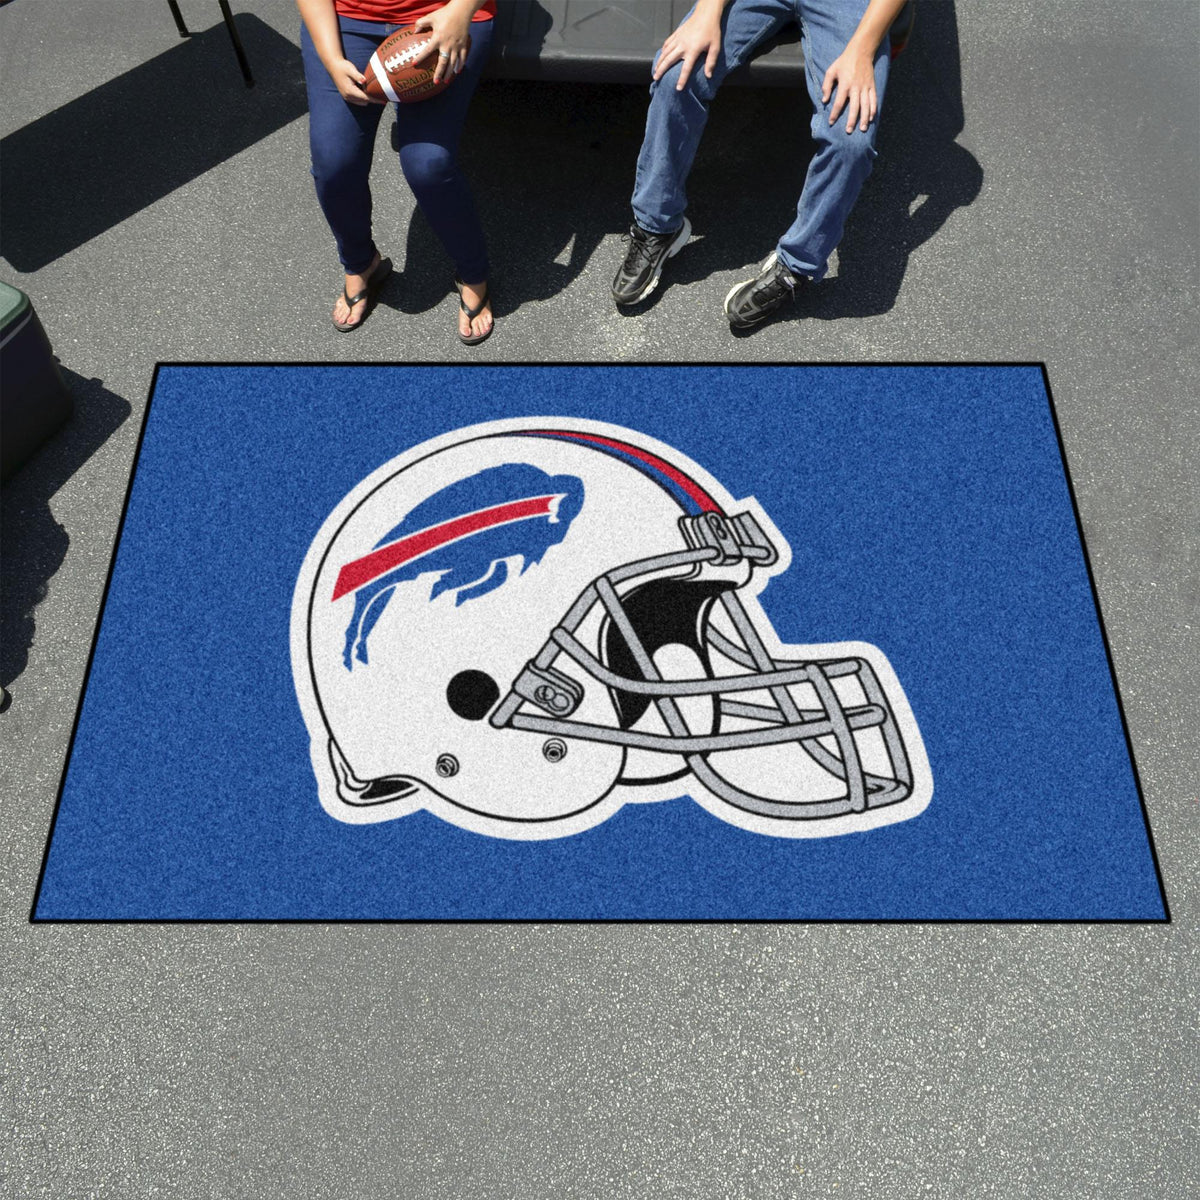 "NFL - Ulti-Mat, 59.5"" x 94.5"" NFL Mats, Rectangular Mats, Ulti-Mat, NFL, Home Fan Mats Buffalo Bills"